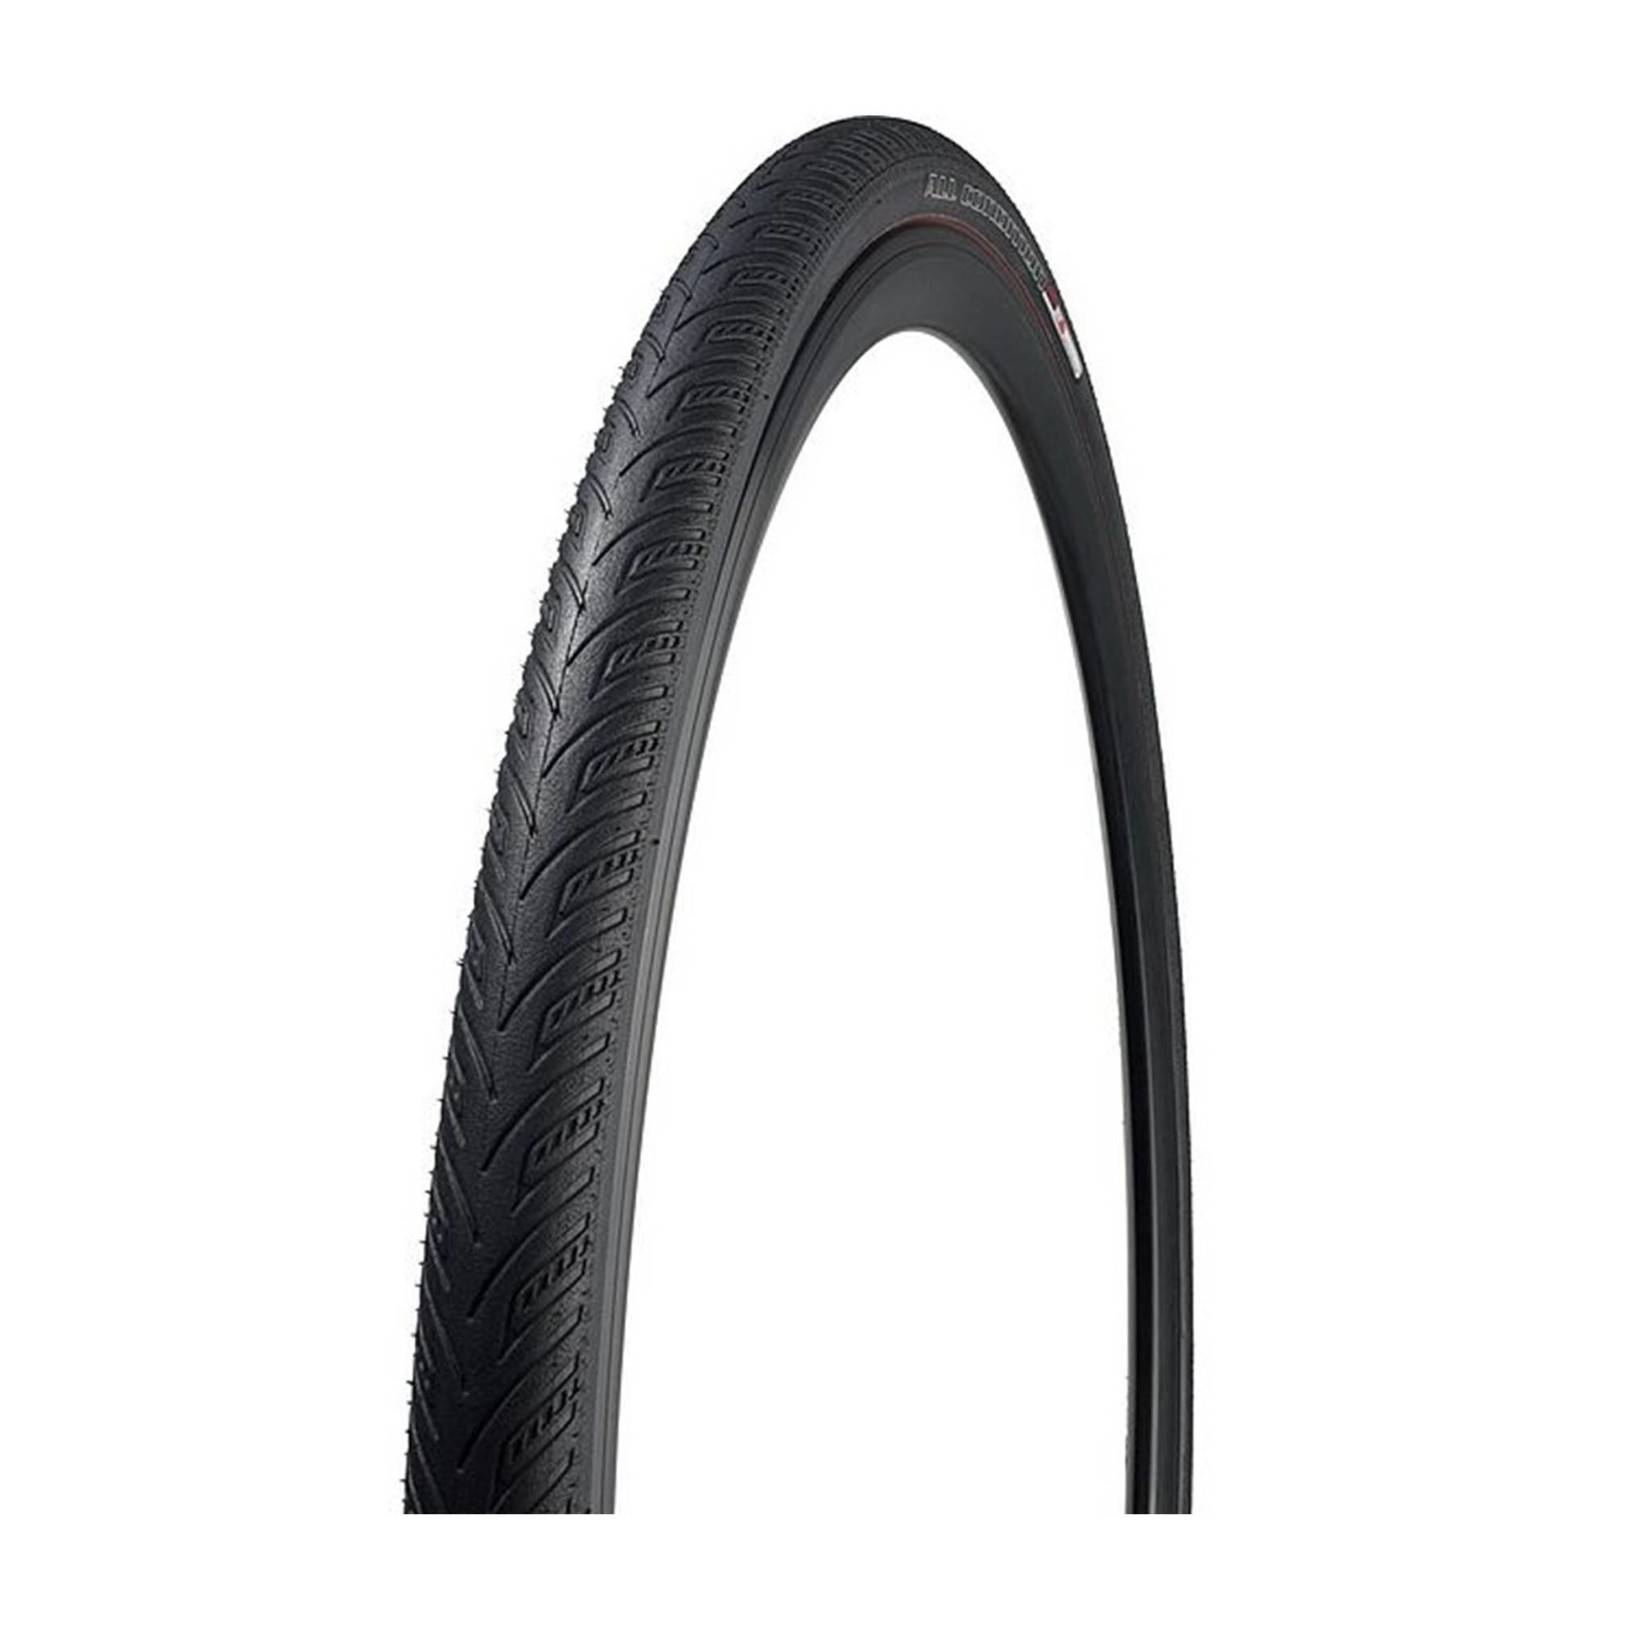 SPECIALIZED Specialized All Condition Armadillo 700 x 23c Tyre